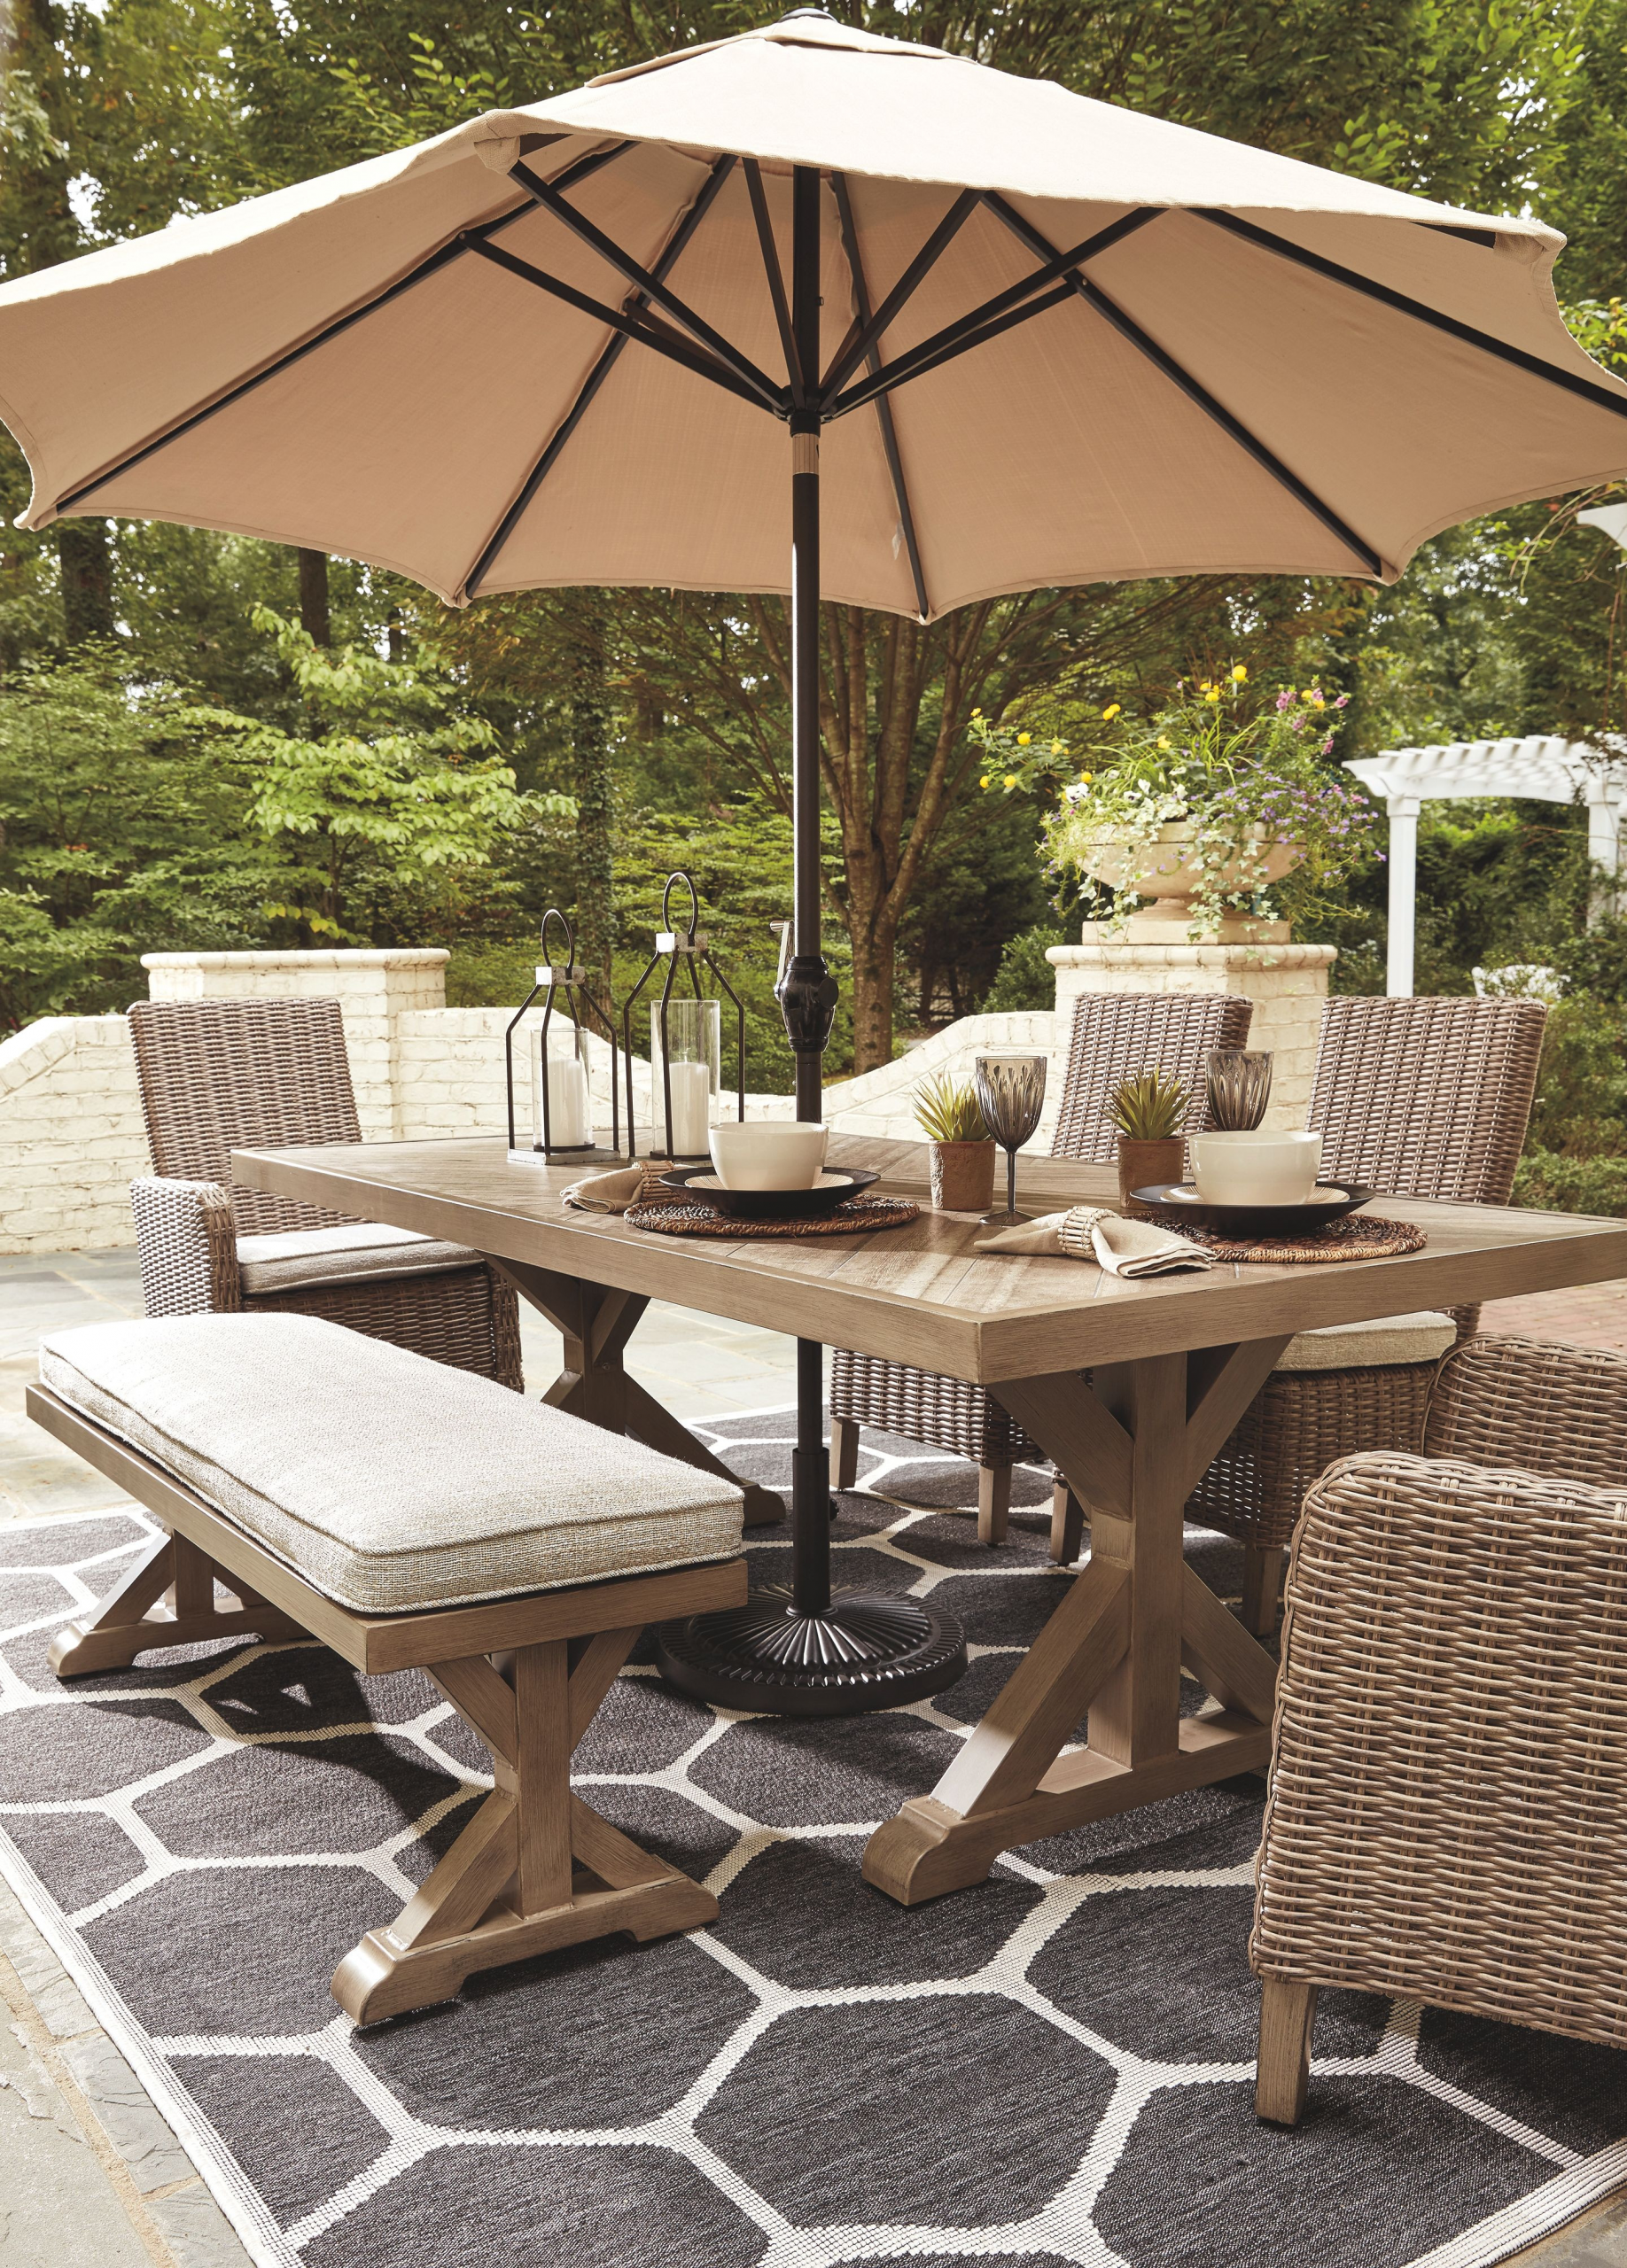 Luxury Outdoor Patio Furniture Dining Backyards Beachcroft Dining Table With Umbrella Option Backyards Outdoor Dining Spaces Backyard Furniture Backyard Dining Patio dining sets with umbrella